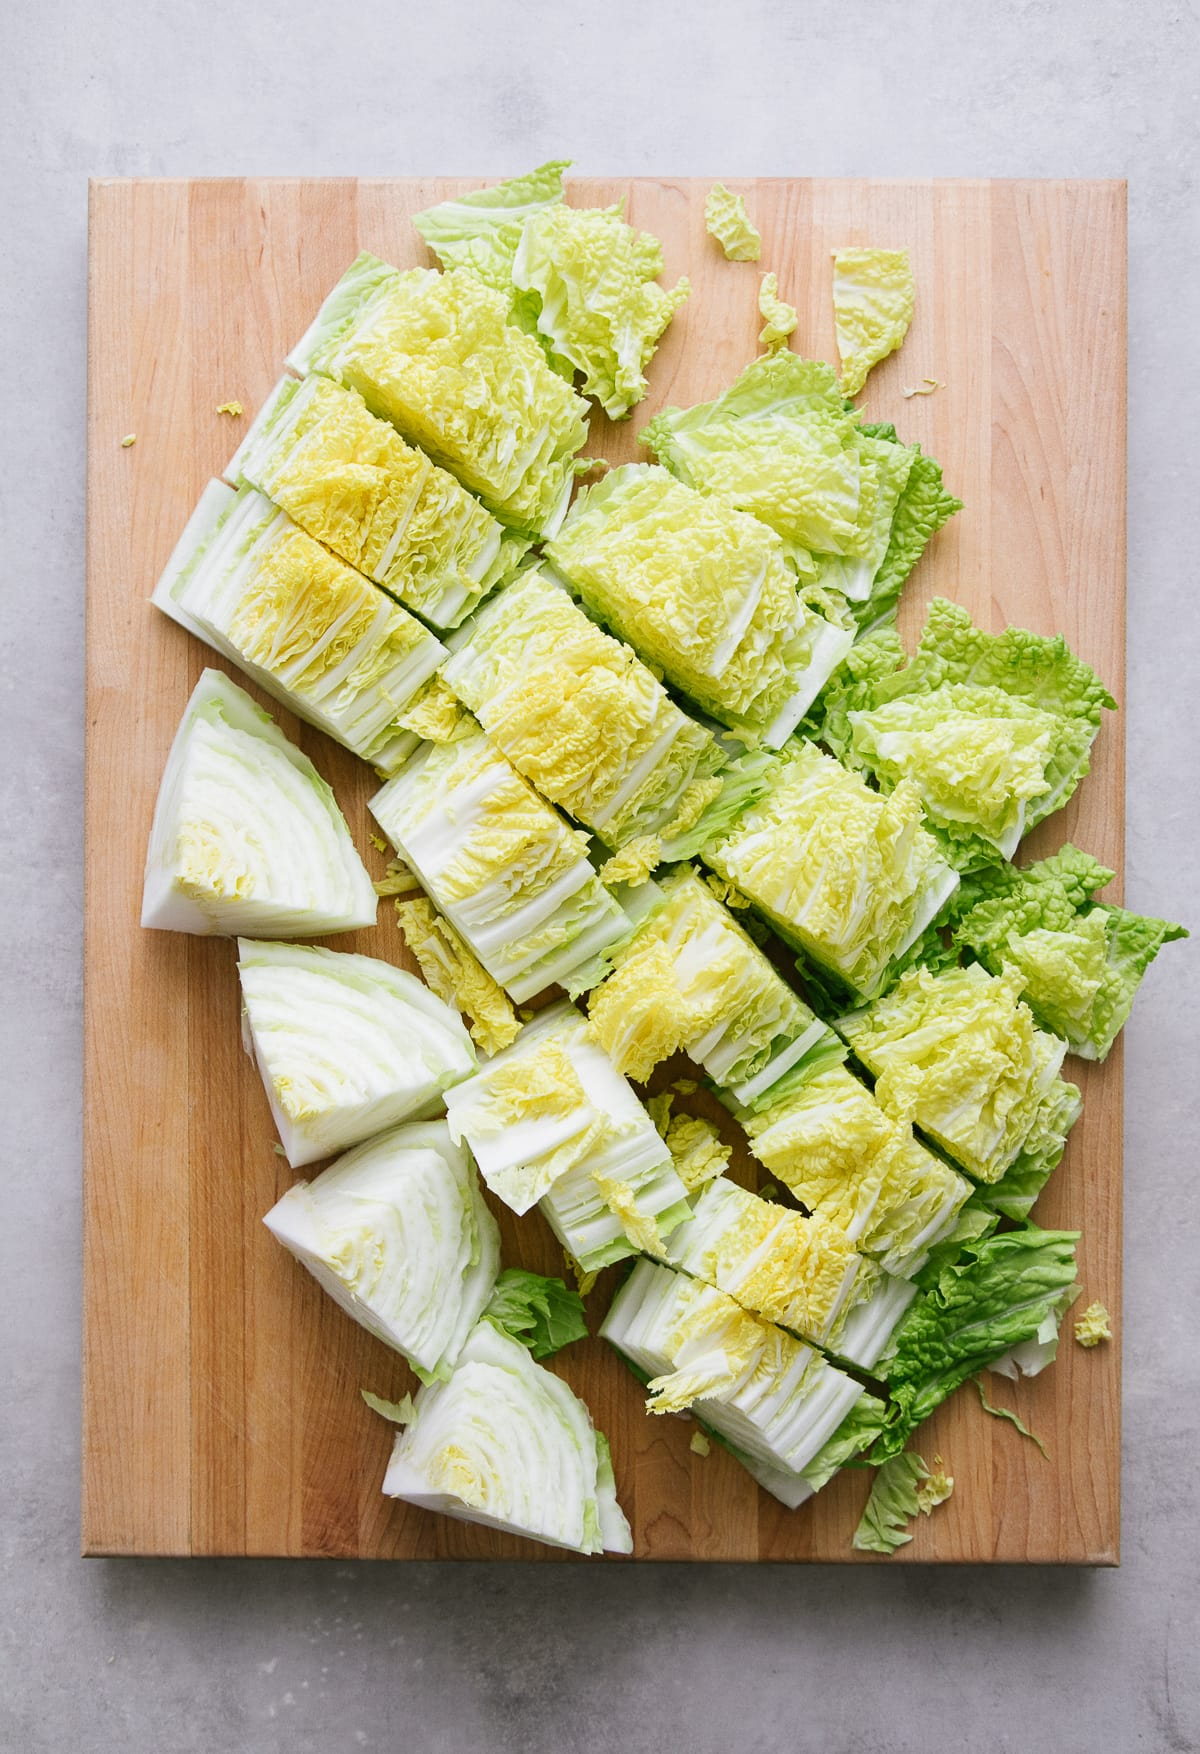 top down view of sliced napa cabbage on a wooden cutting board.